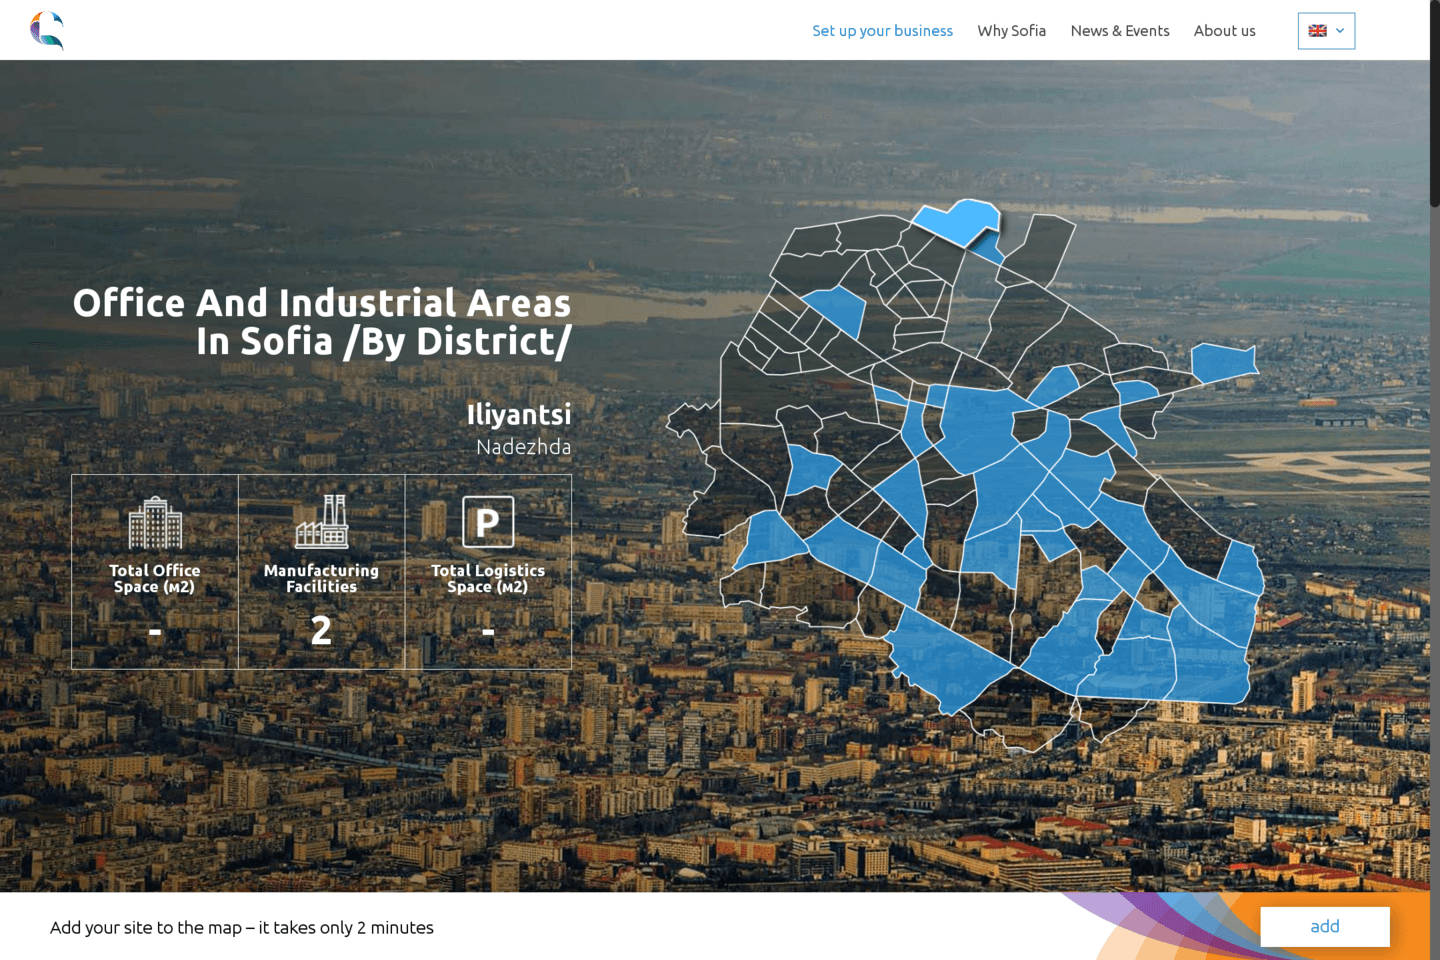 Sofia Investment Agency Presents a new Online Map of the Office and